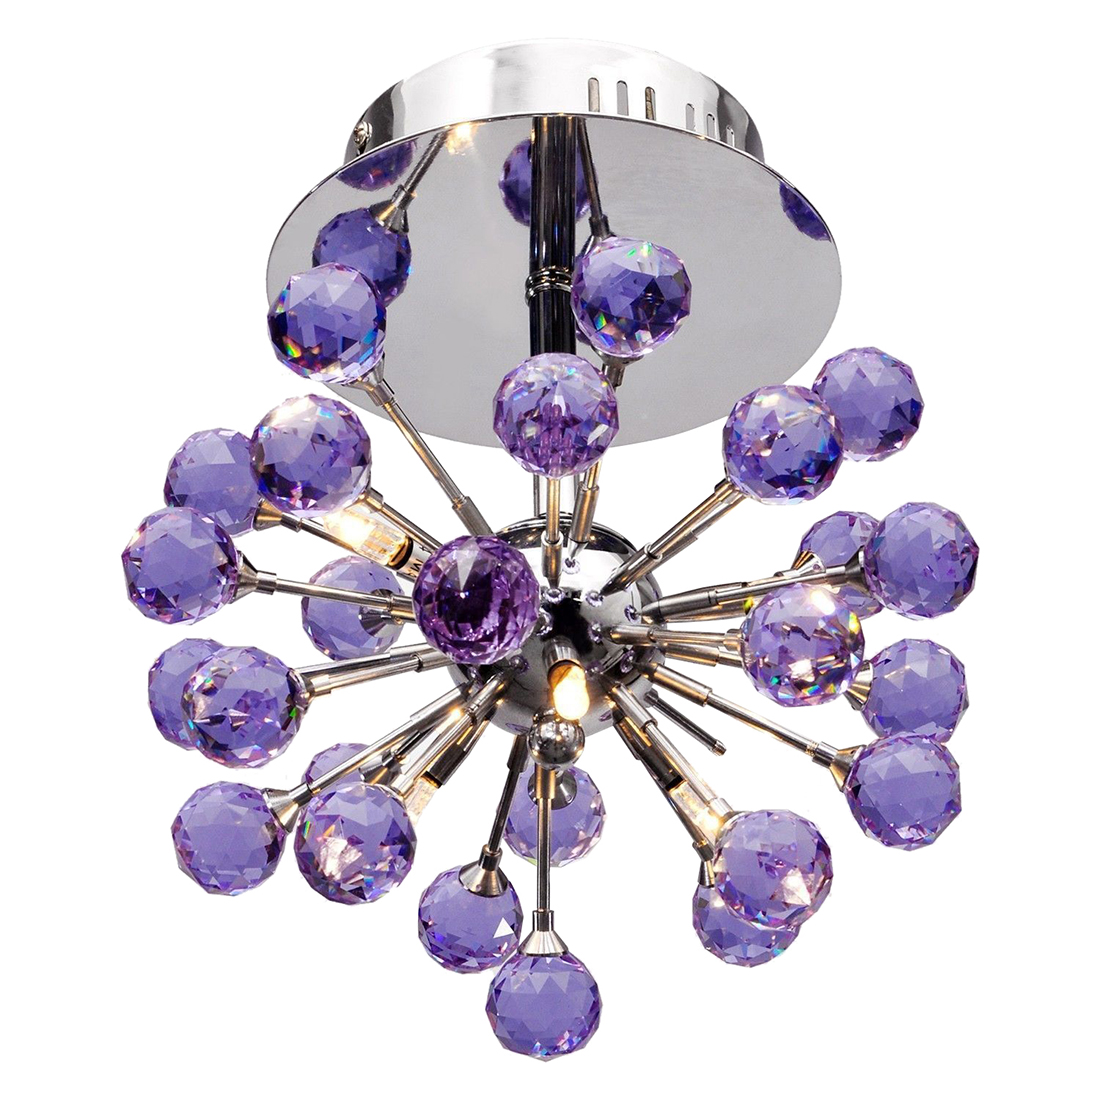 Elegant Flush Mount Crystal Chandelier Ceiling Pendant Lamp Fixture light Purple